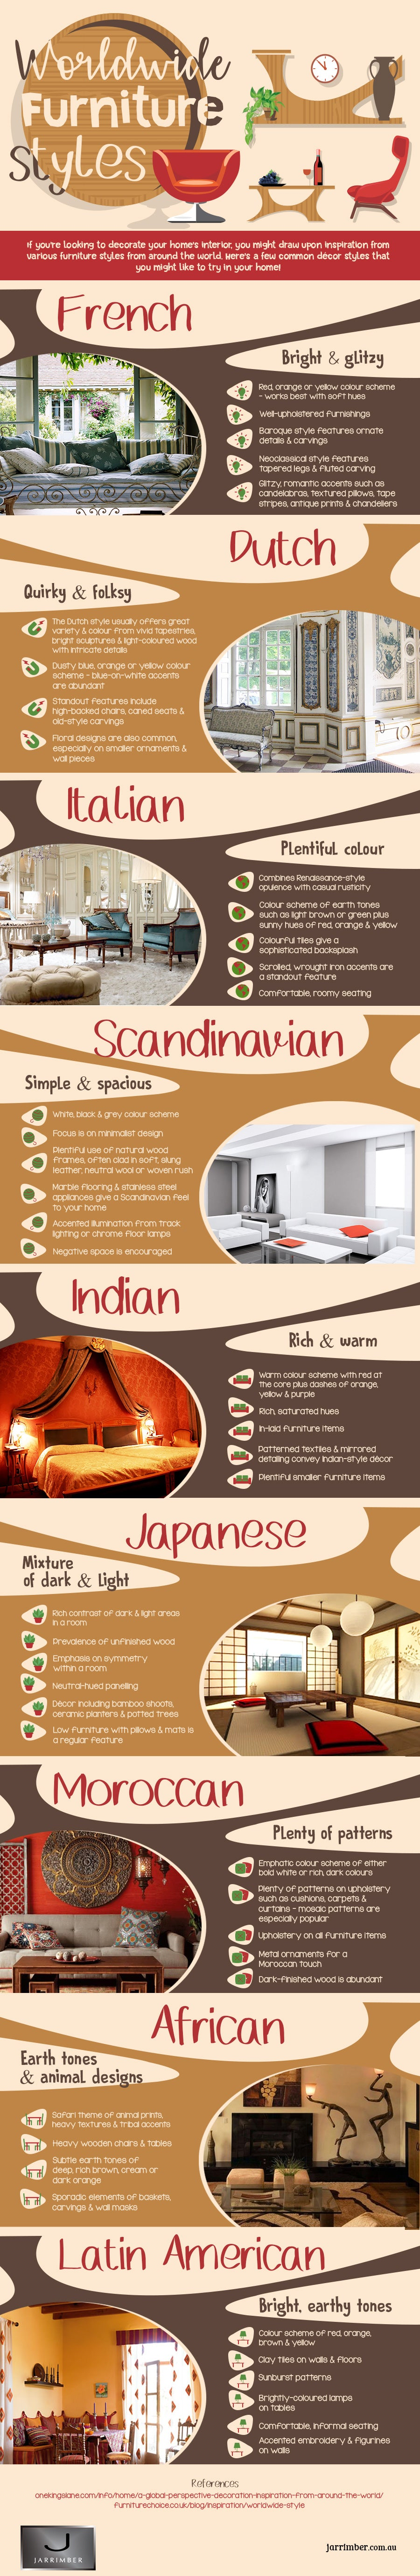 Worldwide Furniture Styles Infographic